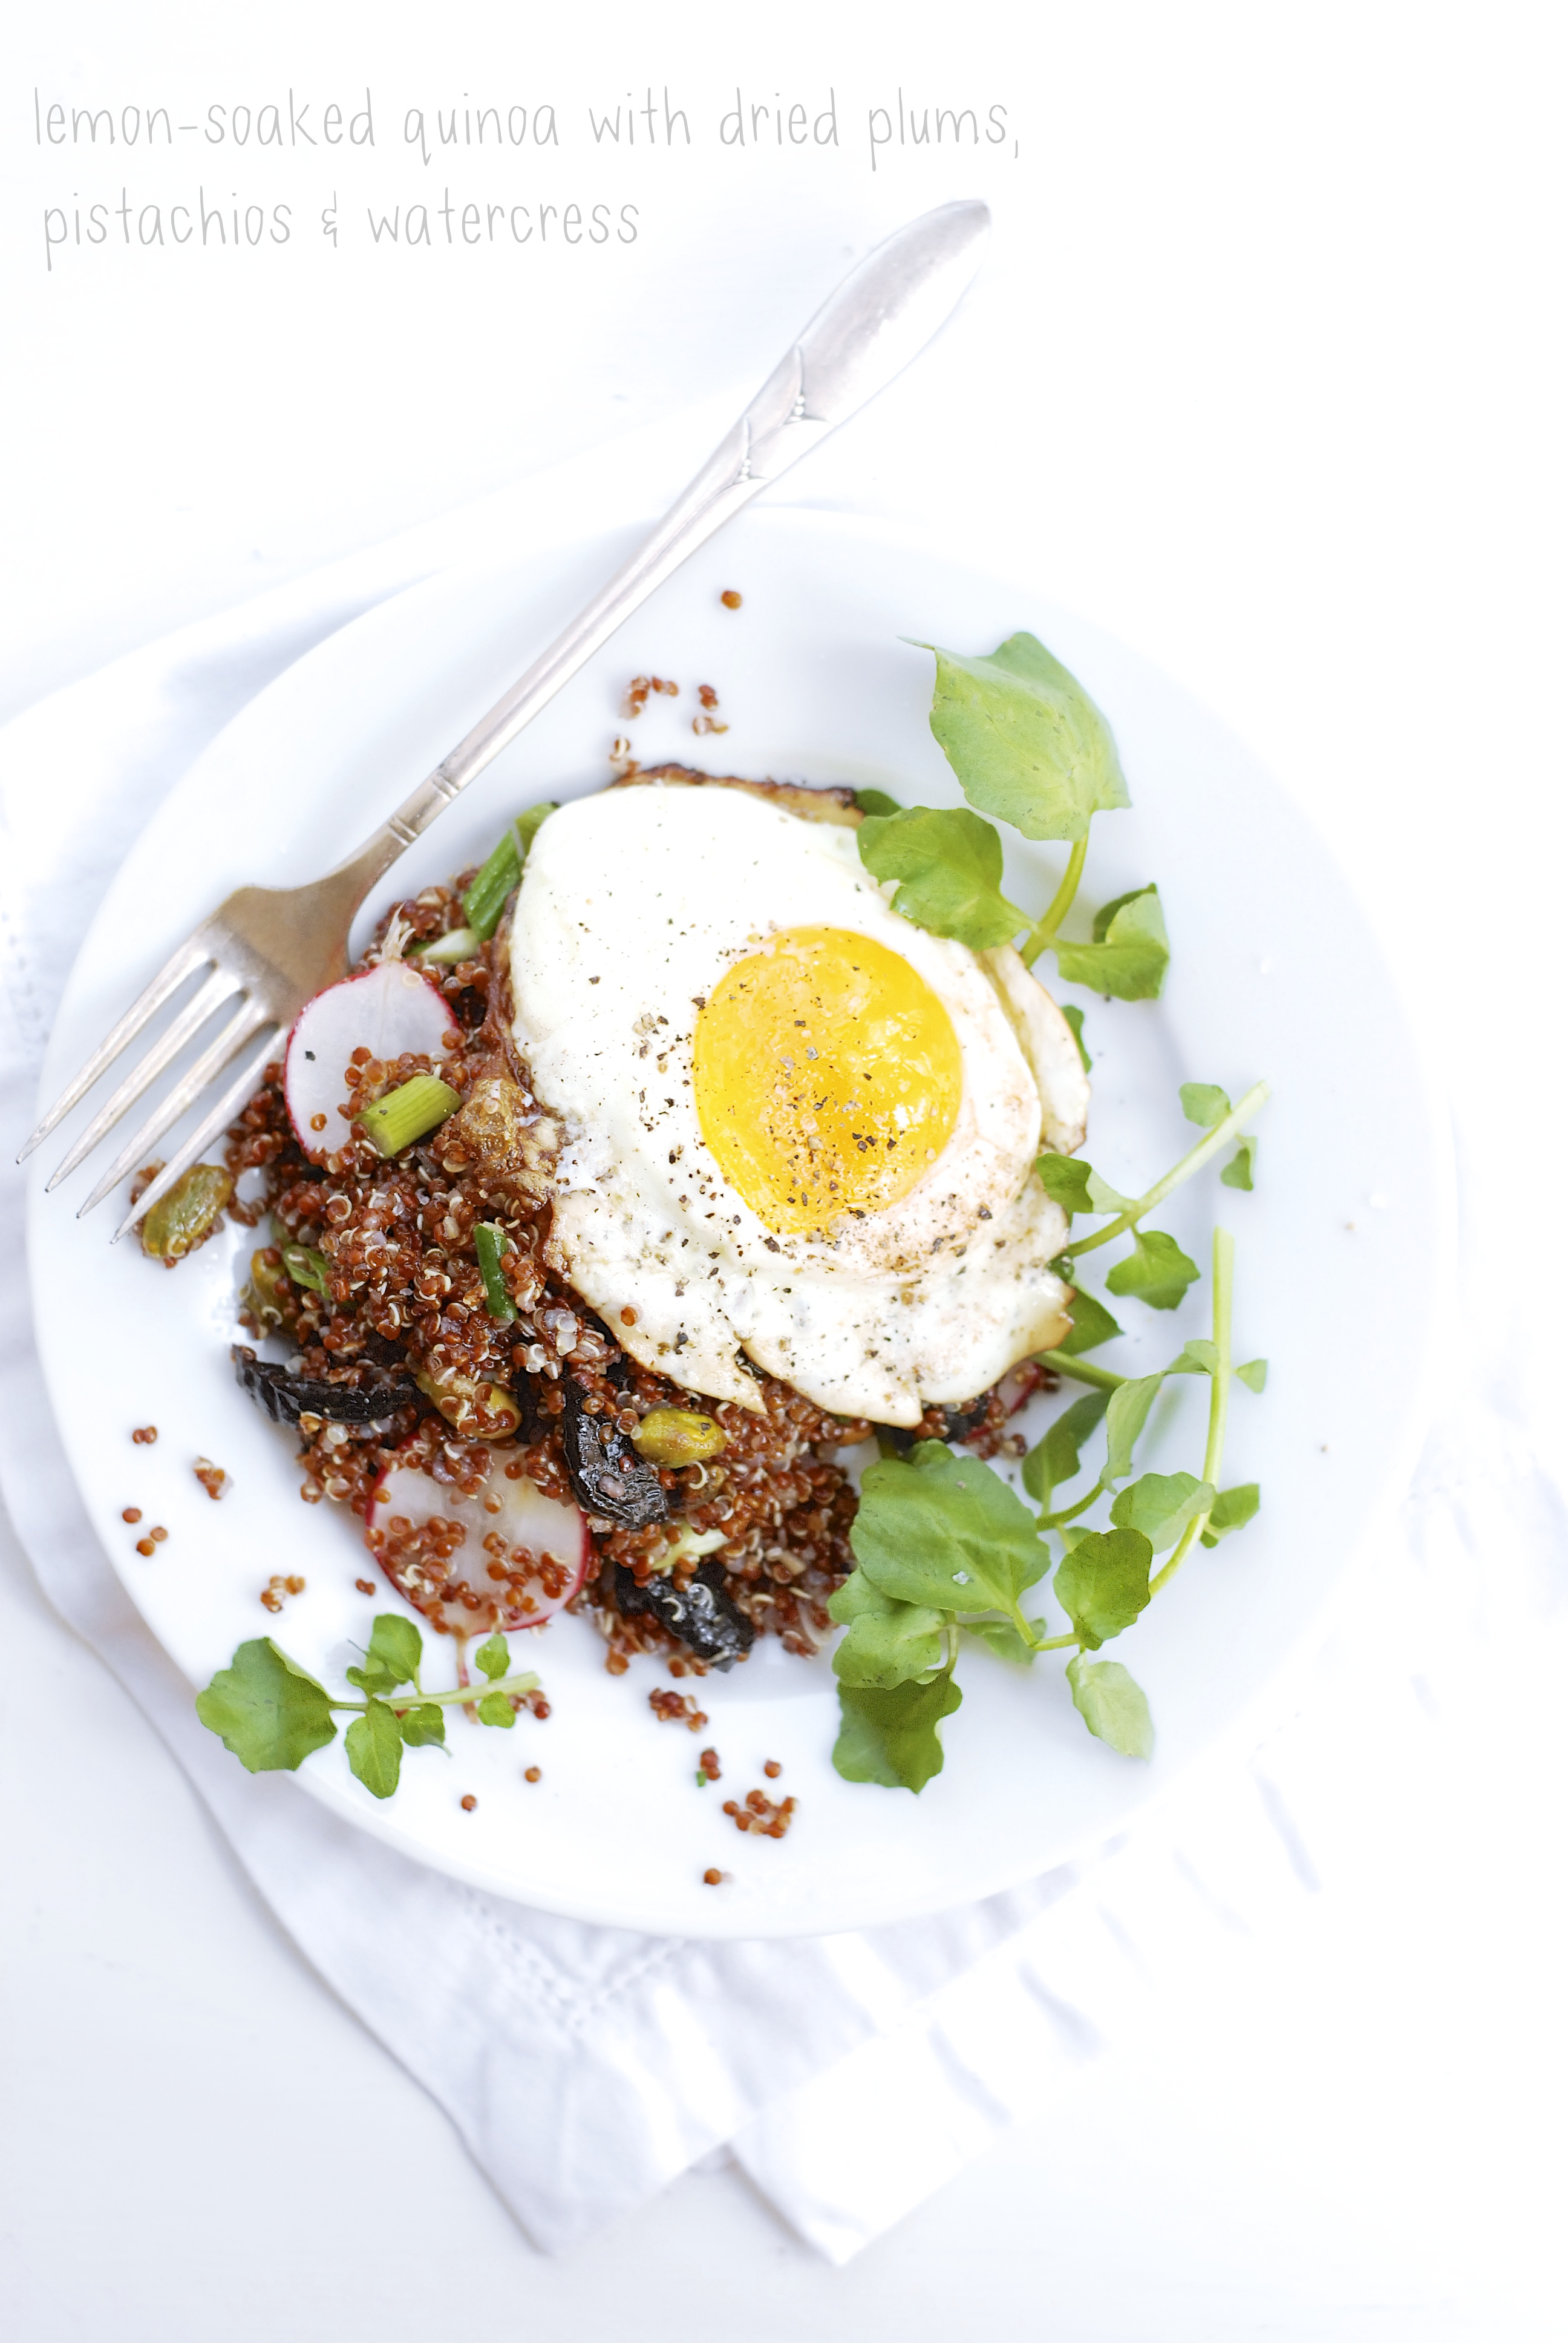 Lemon-Soaked Quinoa with Dried Plums, Pistachios & Watercress